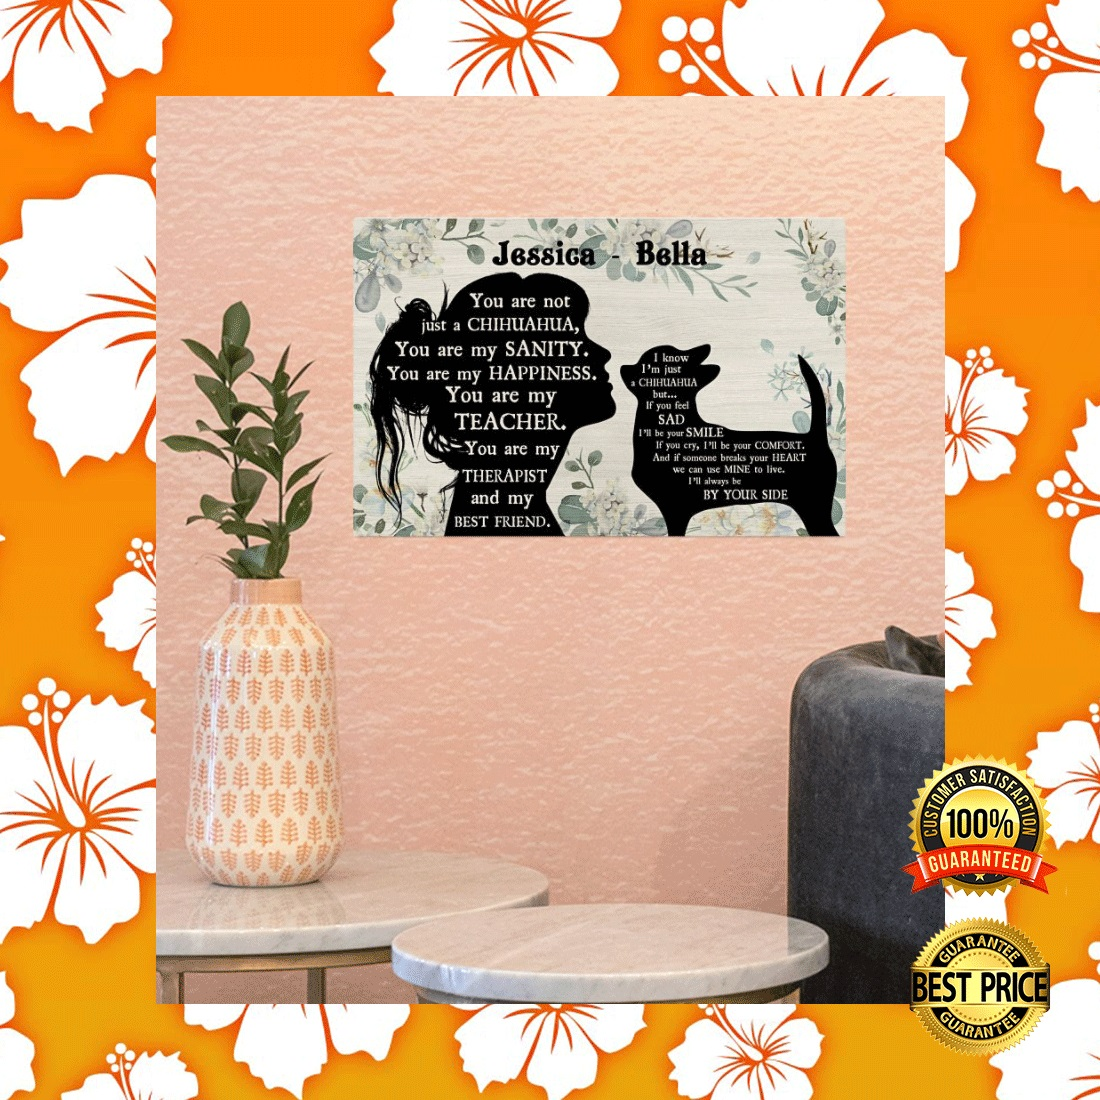 PERSONALIZED GIRL AND CHIHUAHUA YOU ARE NOT JUST A CHIHUAHUA POSTER 6